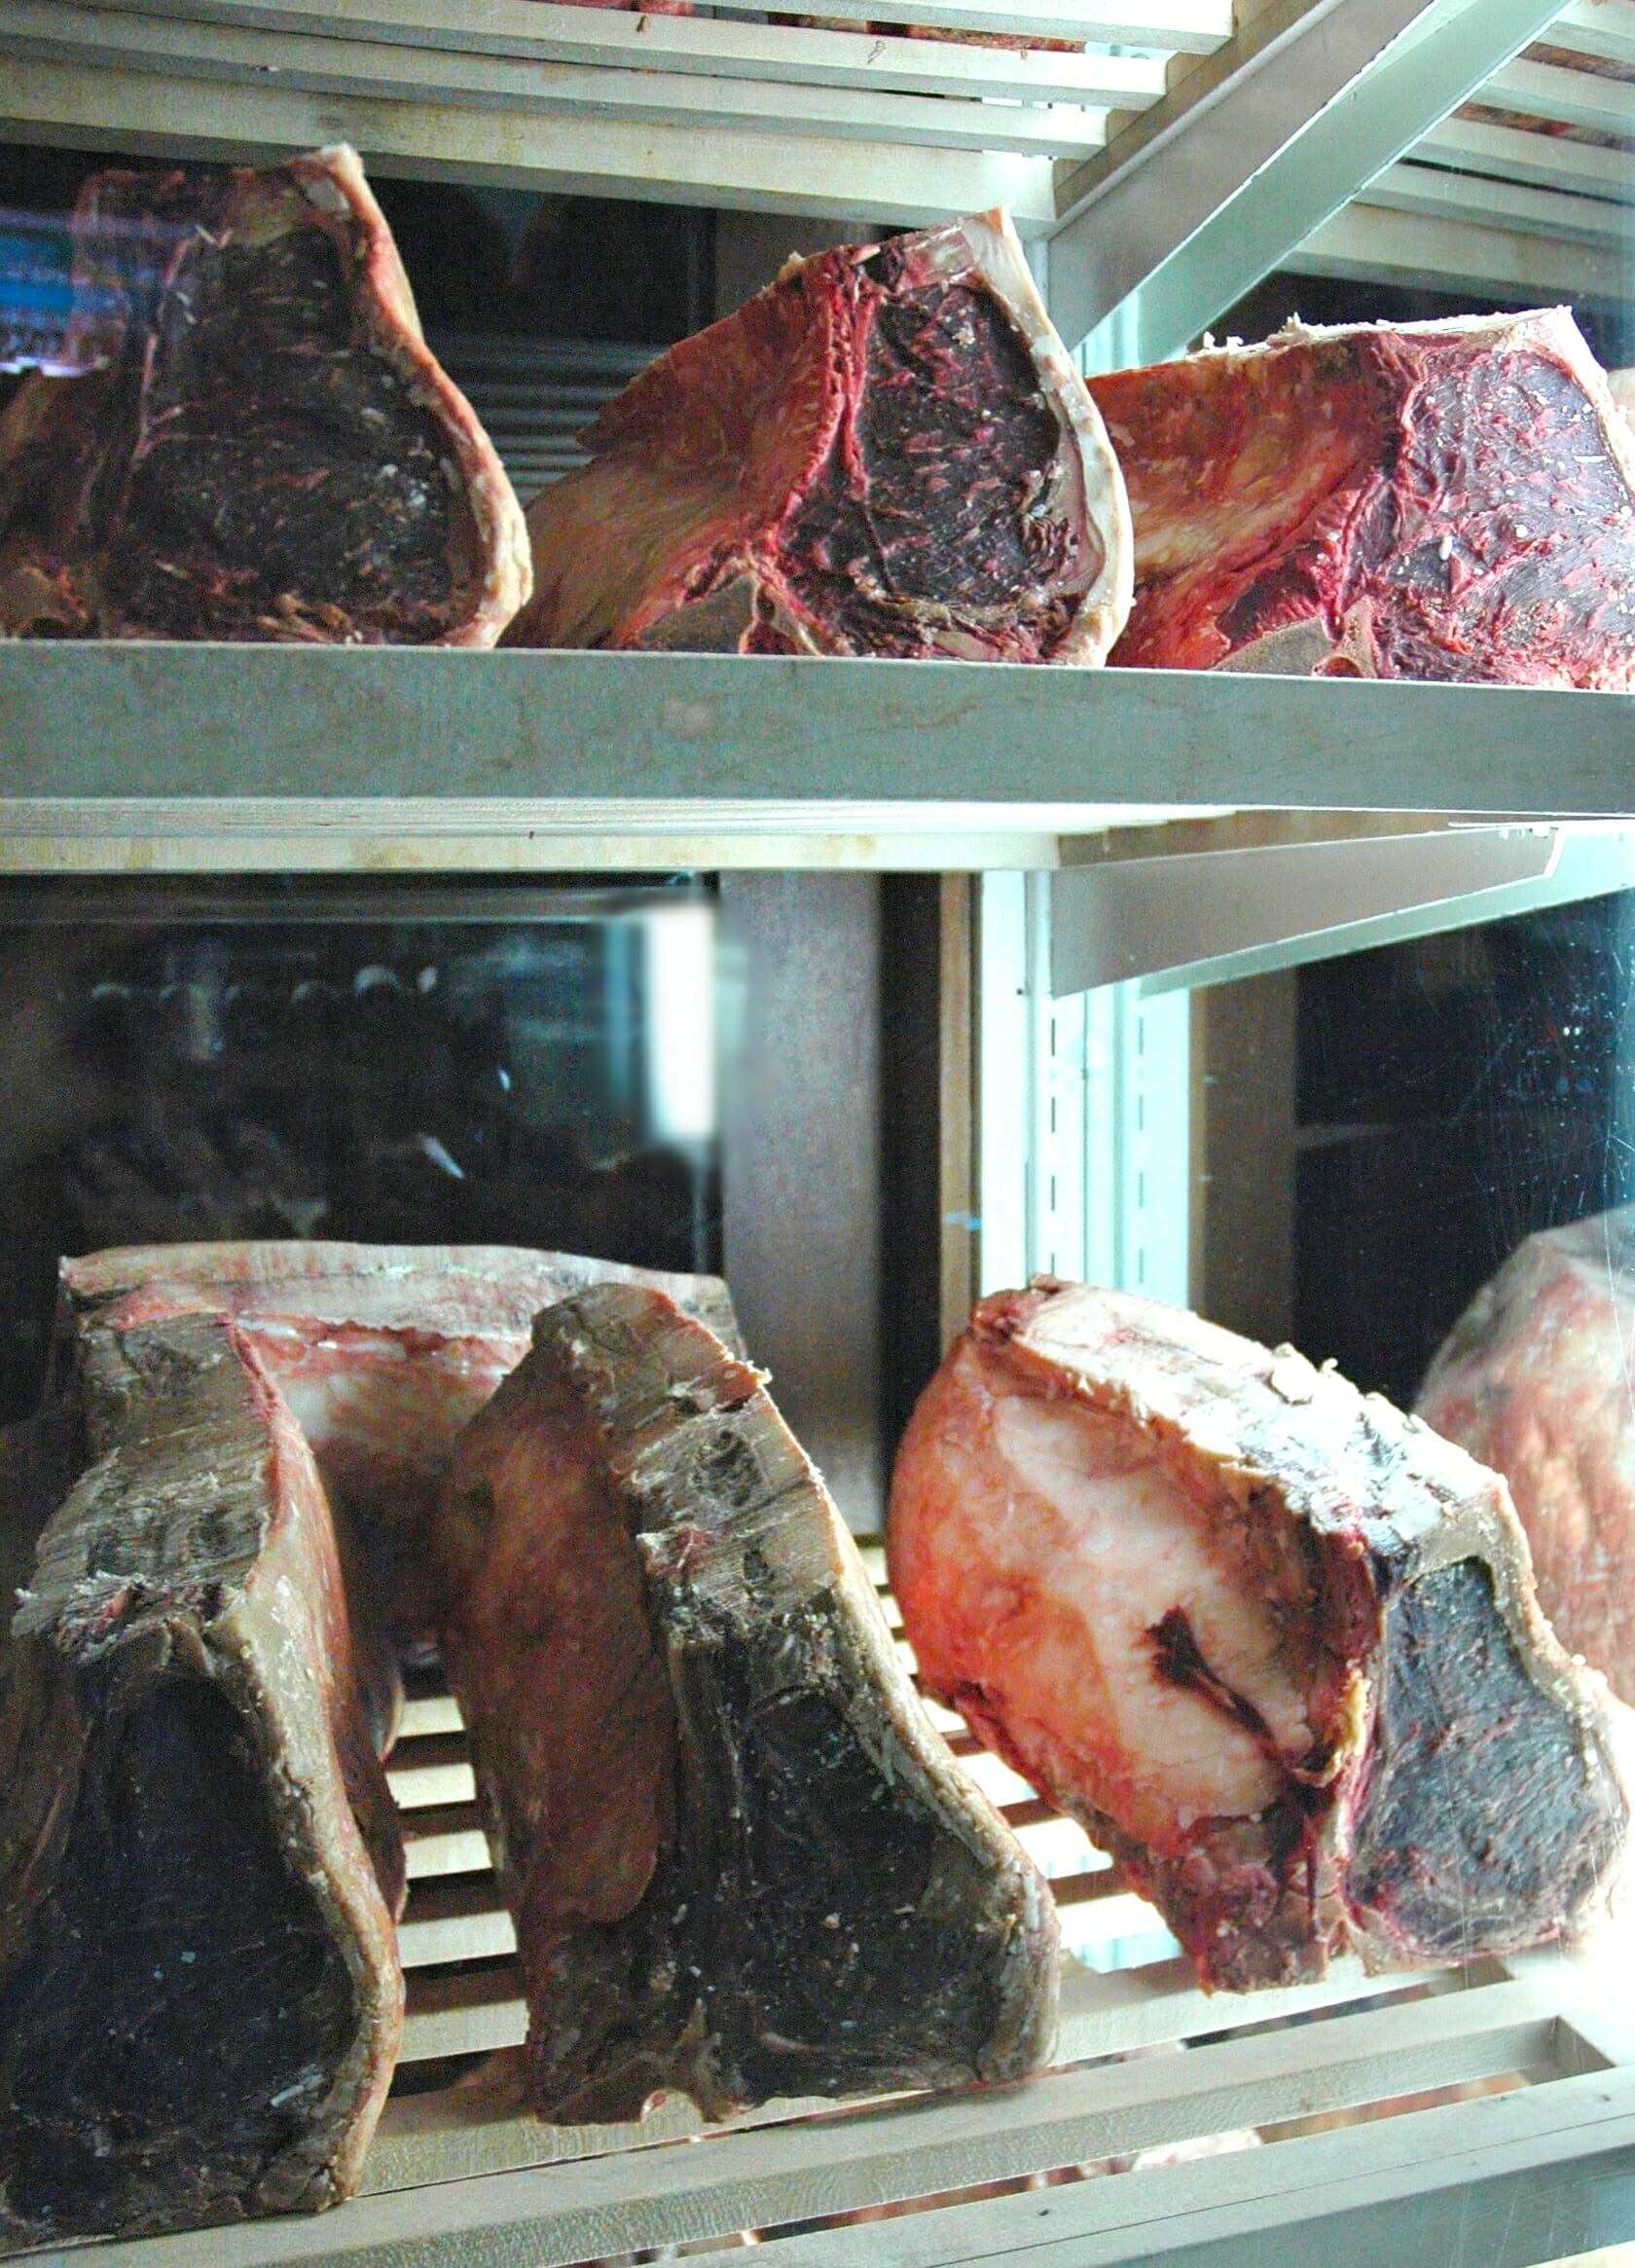 A selection of dry-aged cuts of beef. Note the dark and textured exterior.